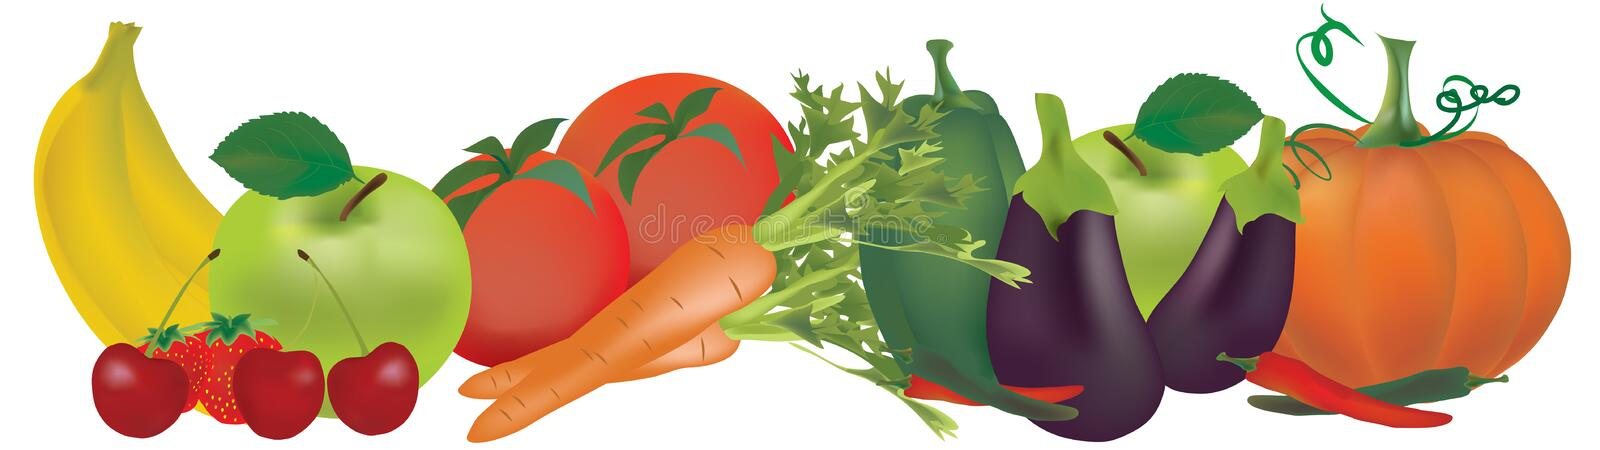 Fruits and vegetables. Illustration of various Fruits and vegetables, Banana, apple, pepper, tomatoes, carrot, strawberry, aubergine and pumpkin vector illustration